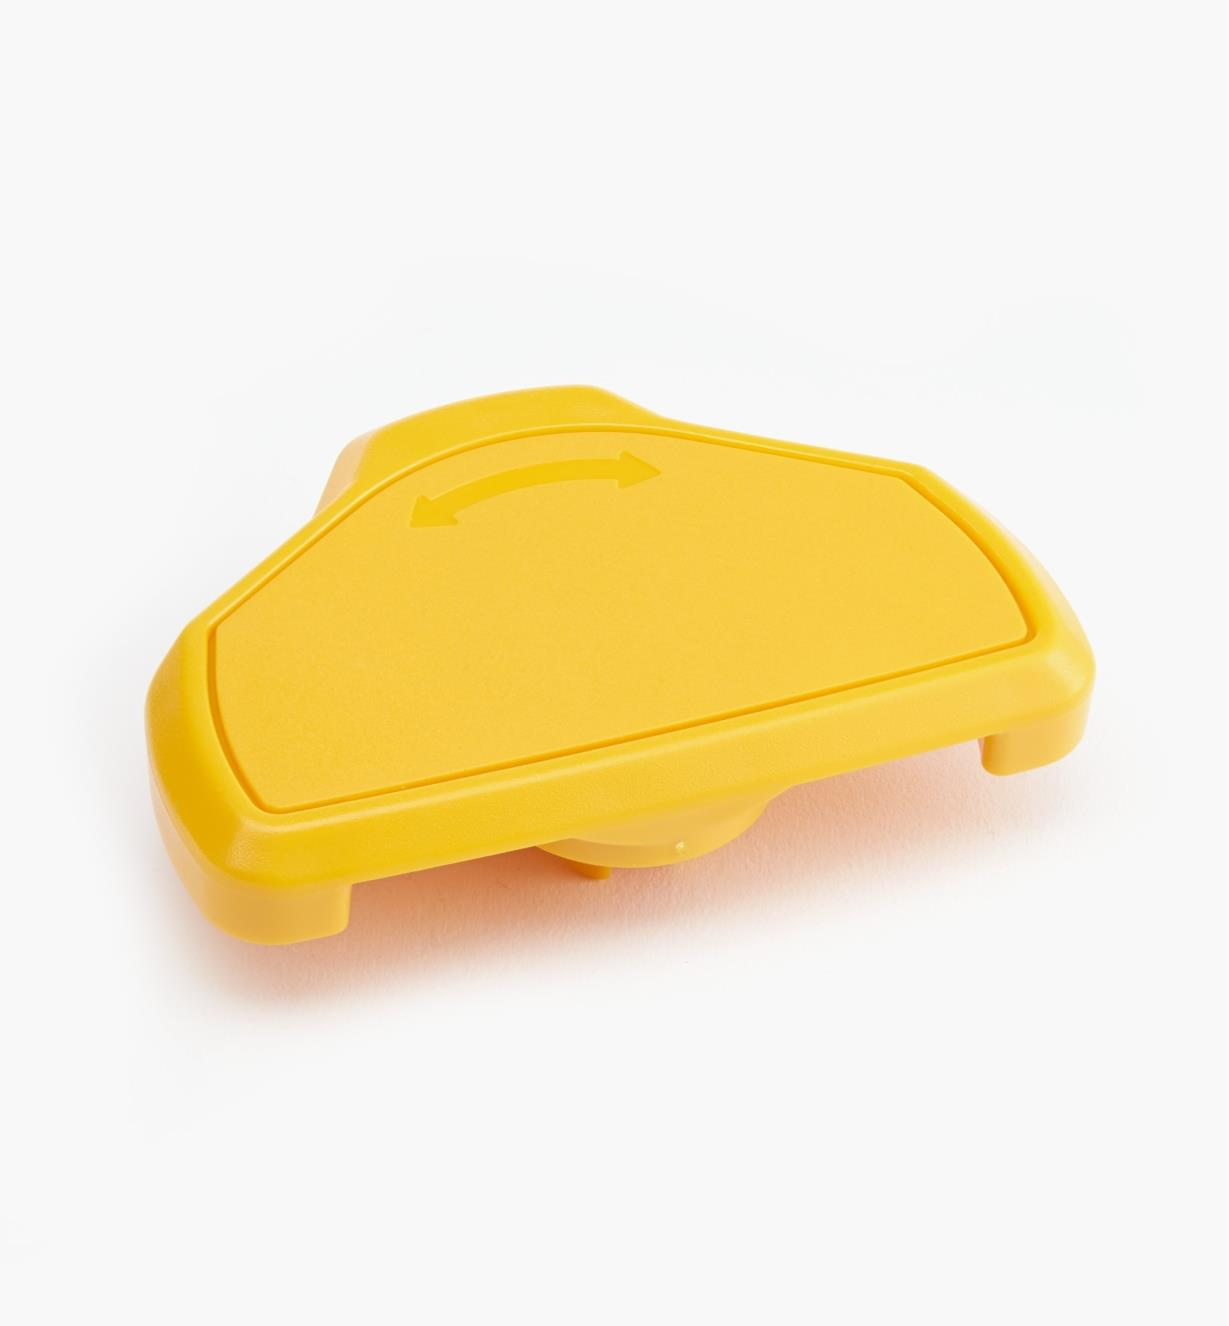 68K4623 - Yellow Regular Latch, each